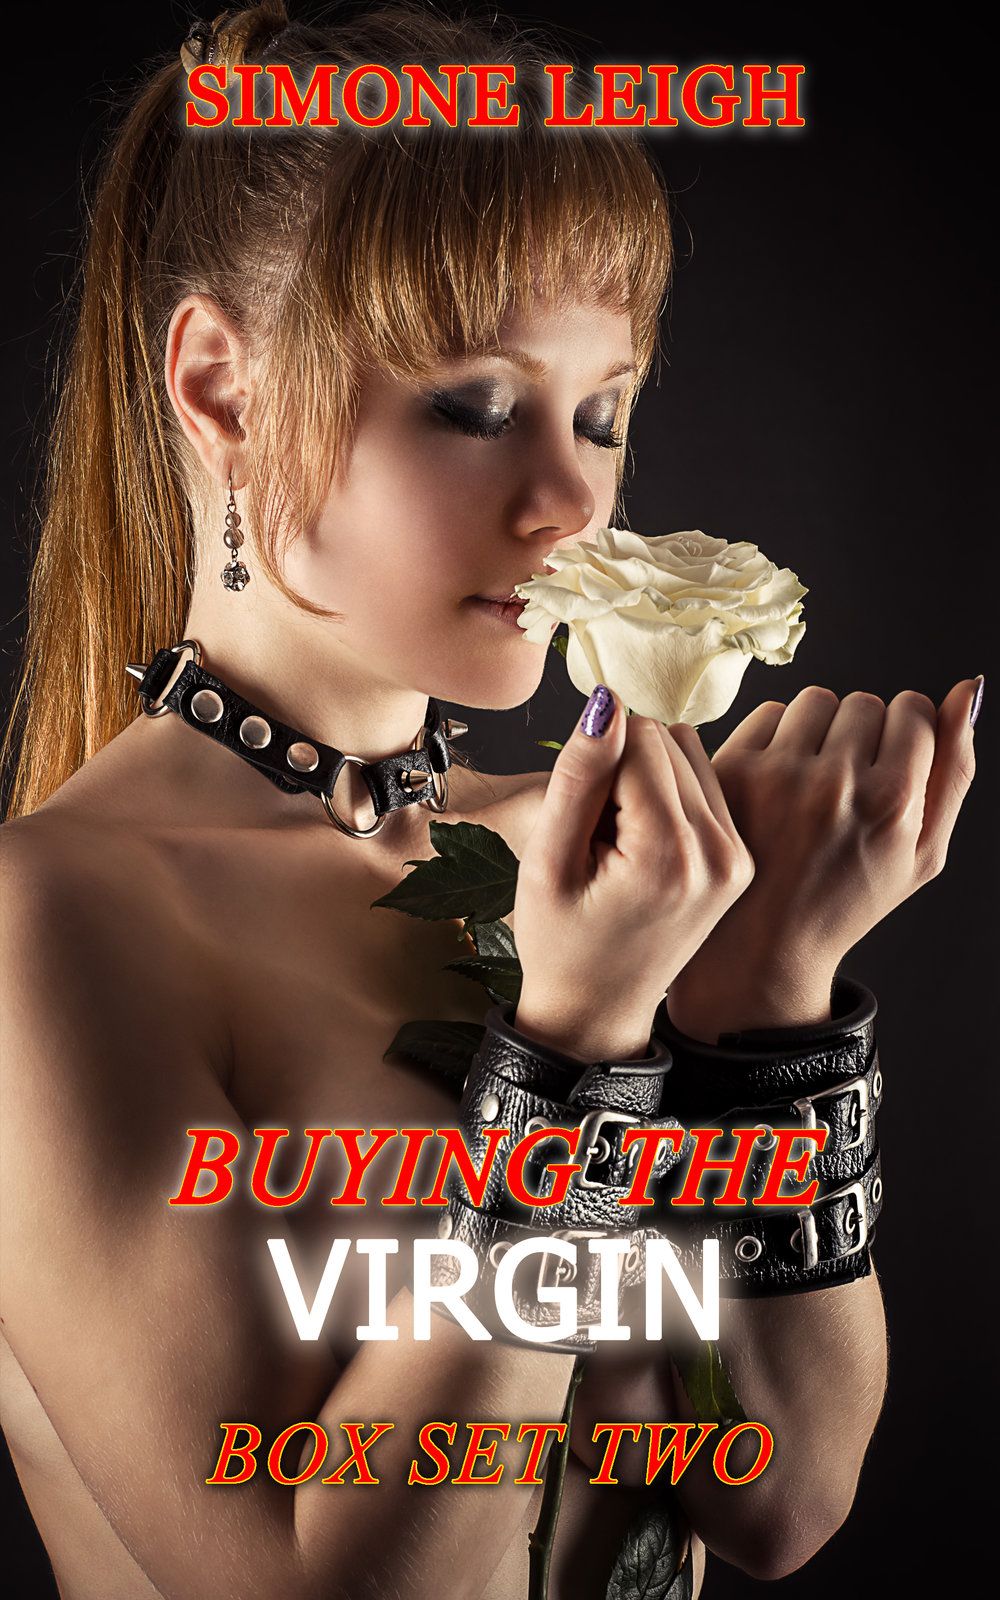 'Buying the Virgin' Box Set Two - BDSM, Ménage and LoveCharlotte, the (Ex) Virgin, returns to her Master, and Michael, her Lover. Her contract is done and her obligations fulfilled. How will her relationship develop with the two men in her life?This is a continuing story of BDSM erotica and ménage between a young woman and her two Masters, and more....Book 6 - The Virgin's HolidayBook 7 - The Virgin's ChristmasBook 8 - The Virgin's ValentinesBook 9 - The Virgin's MasterBook 10 - The Virgin's LoverBook 11 - The Virgin's FantasiesBook 12 - The Virgin's Choices